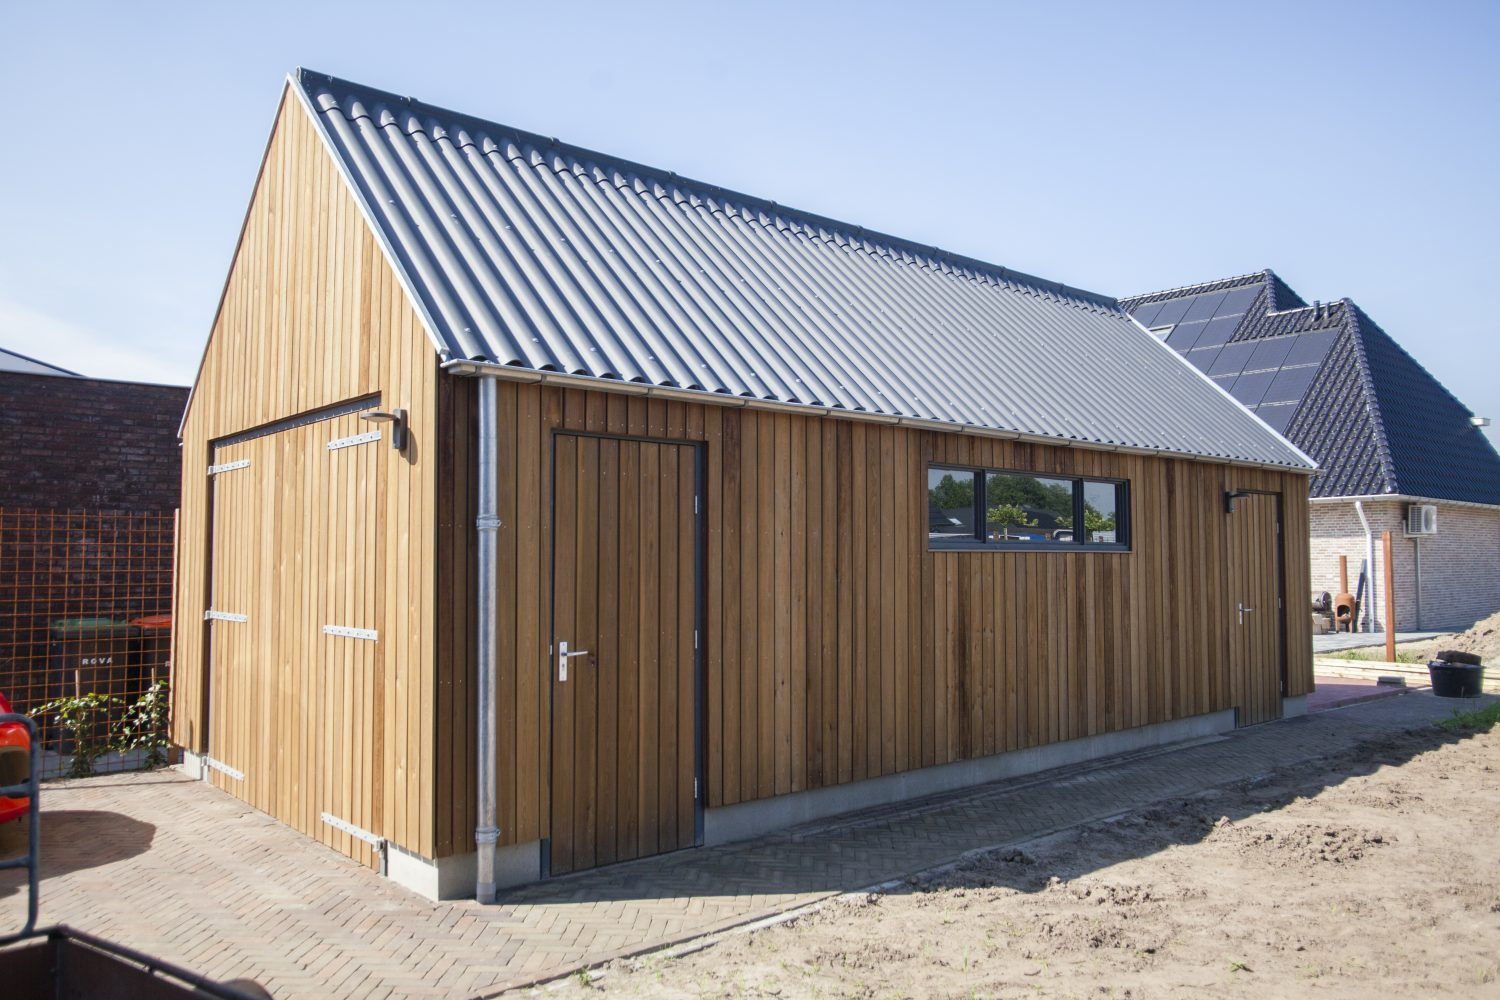 Houtbouw Garage Schuur : Garages schuren vdbent wood creations